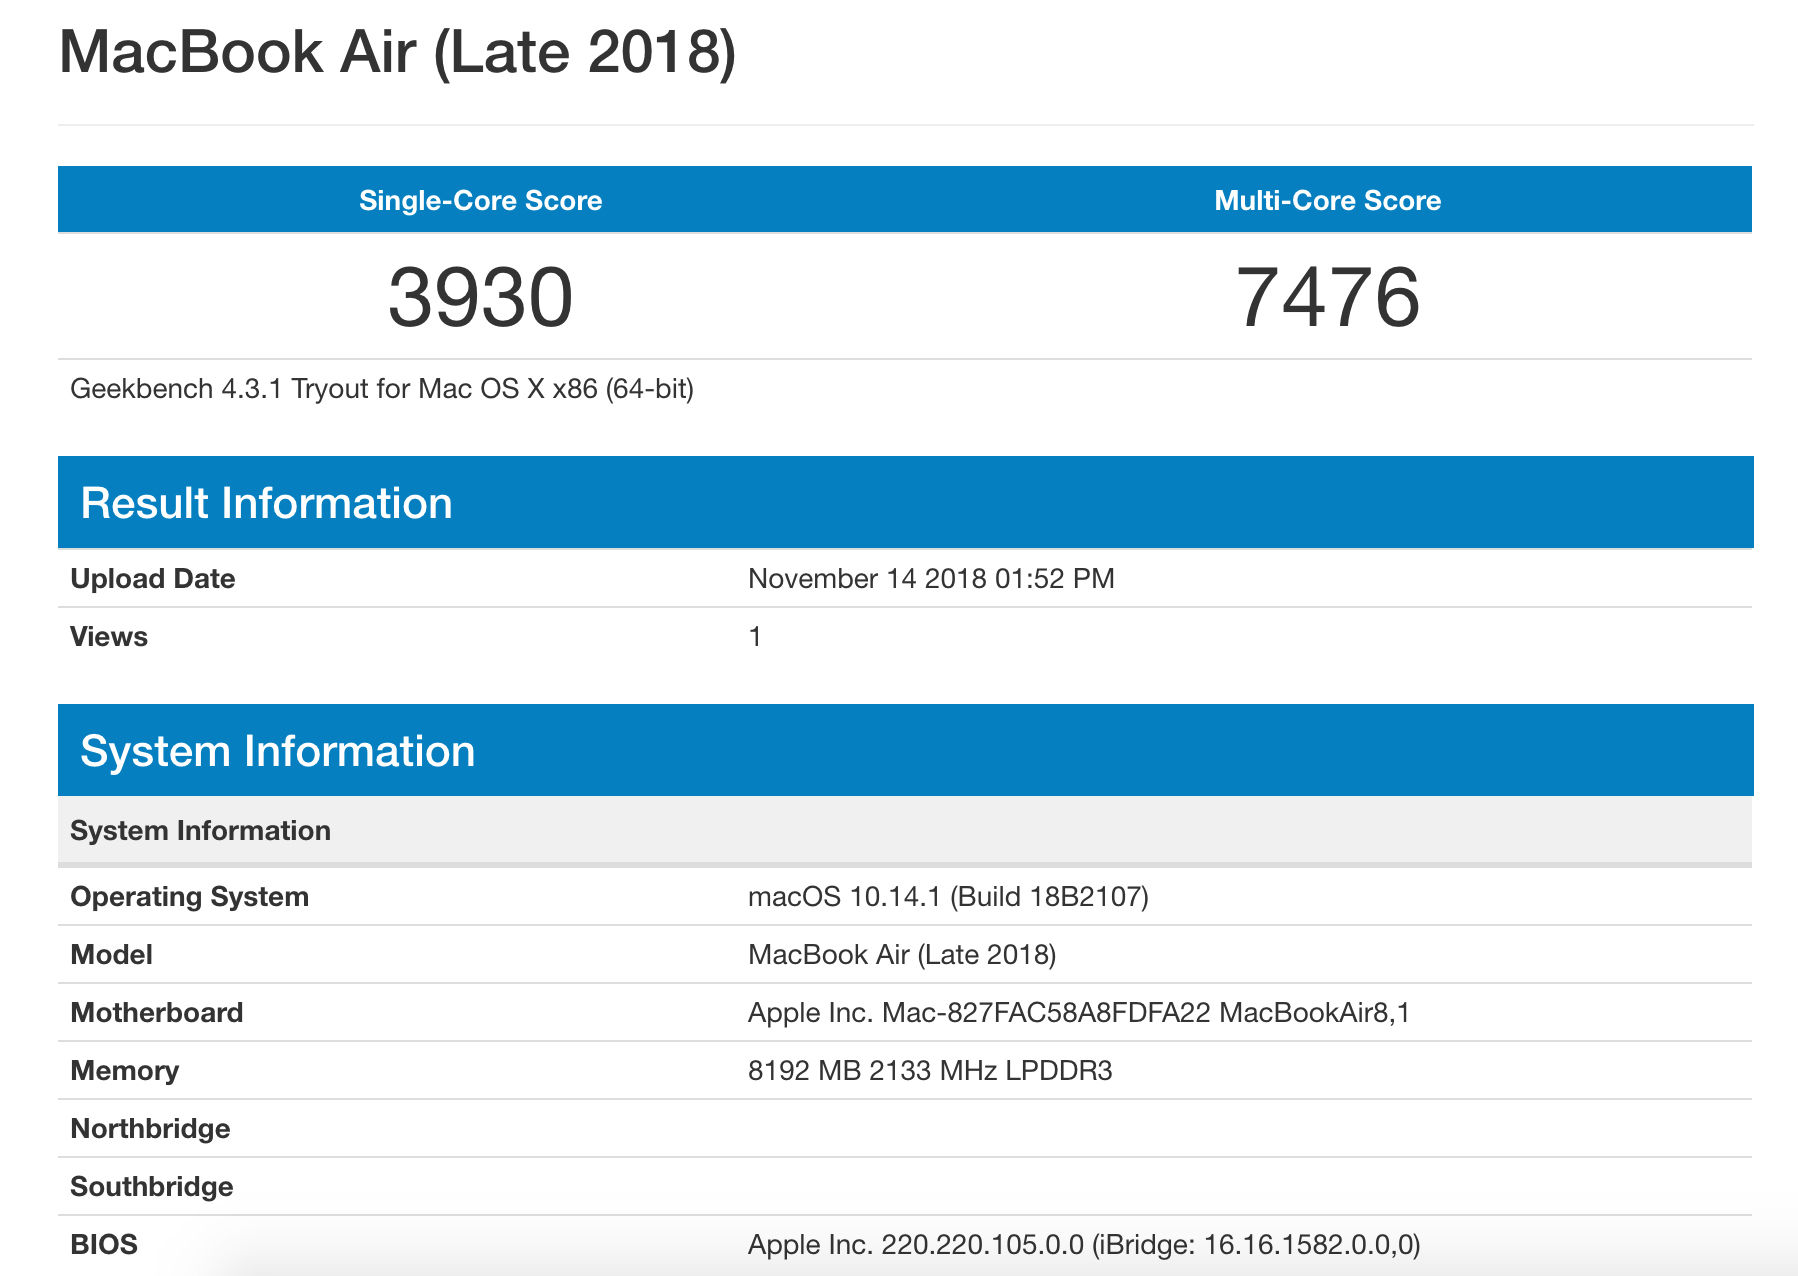 MacBook Air 2018 Geekbench score